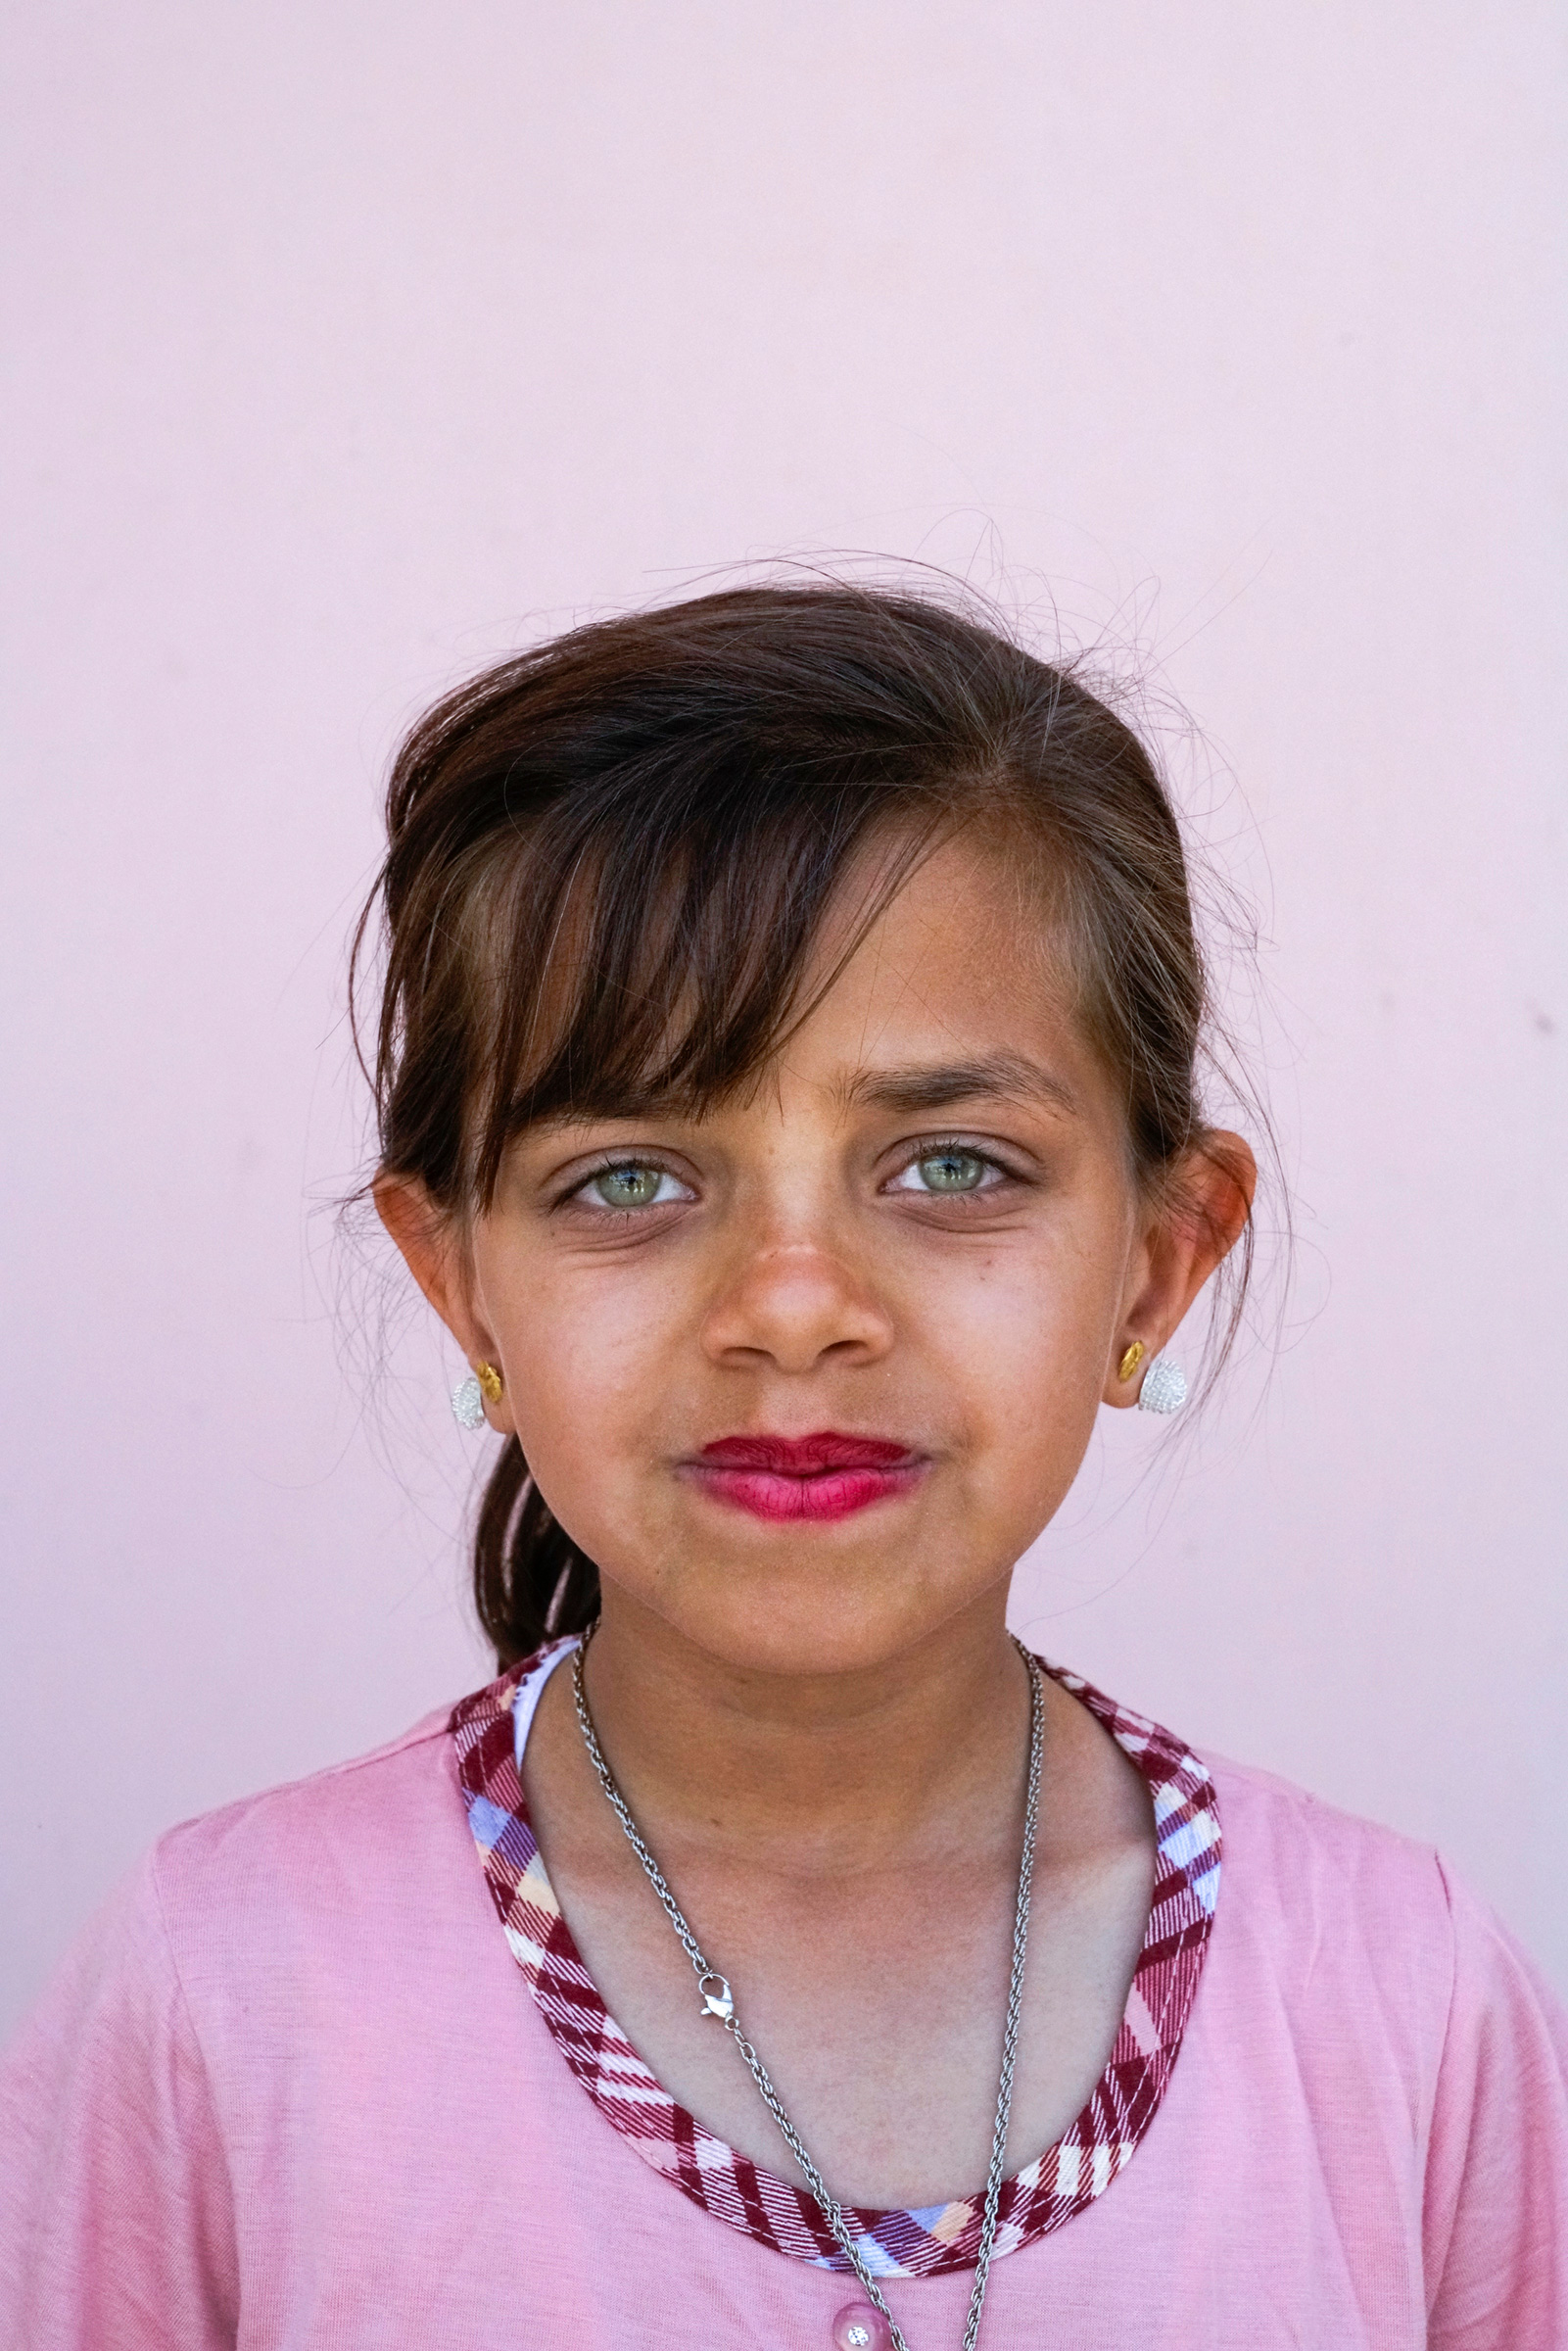 A portrait of a young Yazidi girl in a town recently liberated from ISIS. Bashiqa, Iraq, 2017.